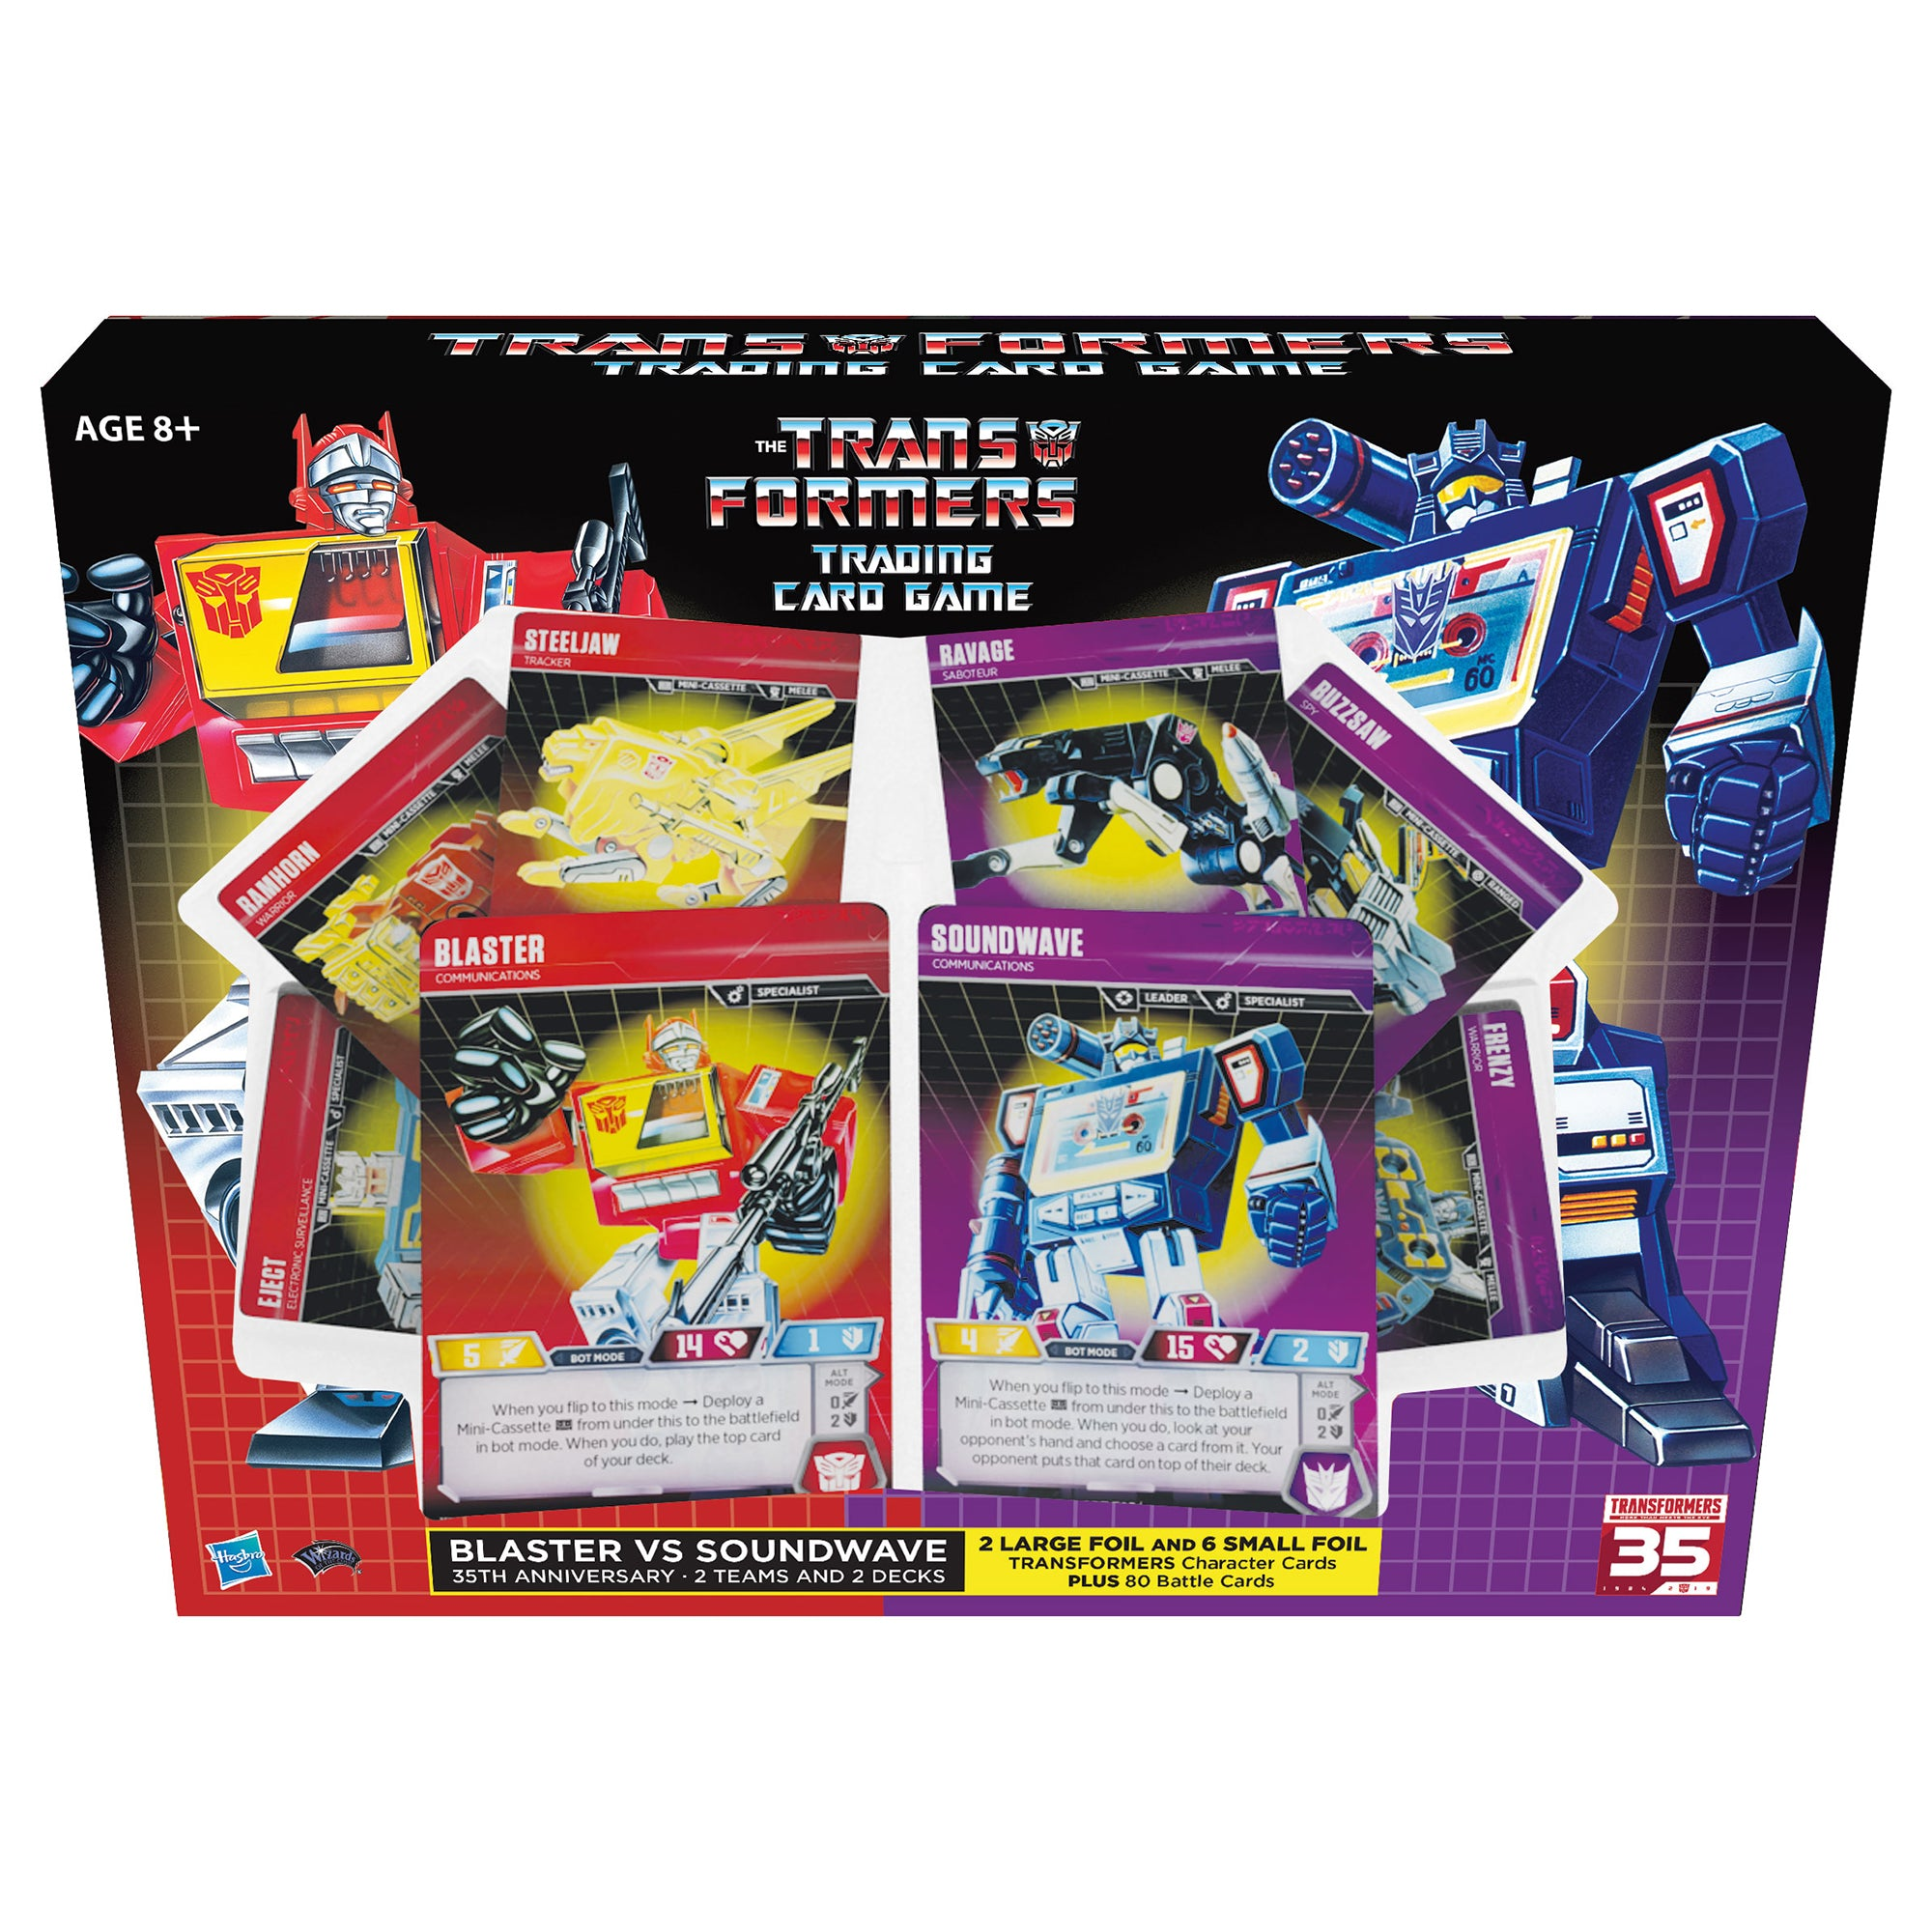 Transformers TCG Blaster VS Soundwave 35th Anniversary Edition